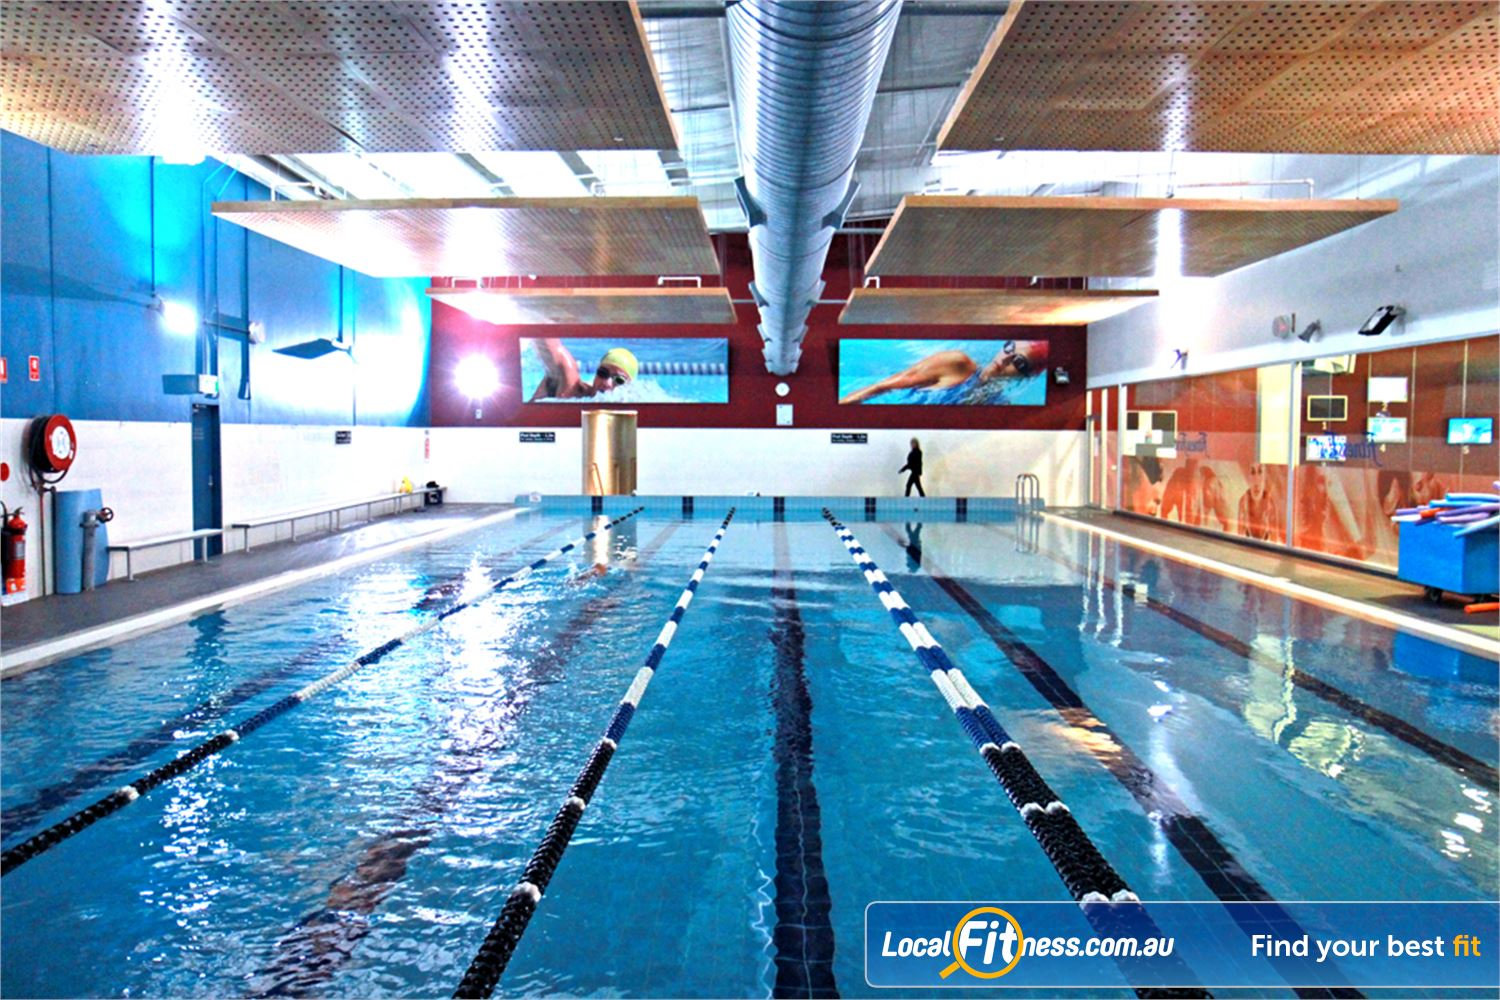 Fitness First Rockdale Our aquatic activities range includes Rockdale swim school, aqua classes and lap swimming.